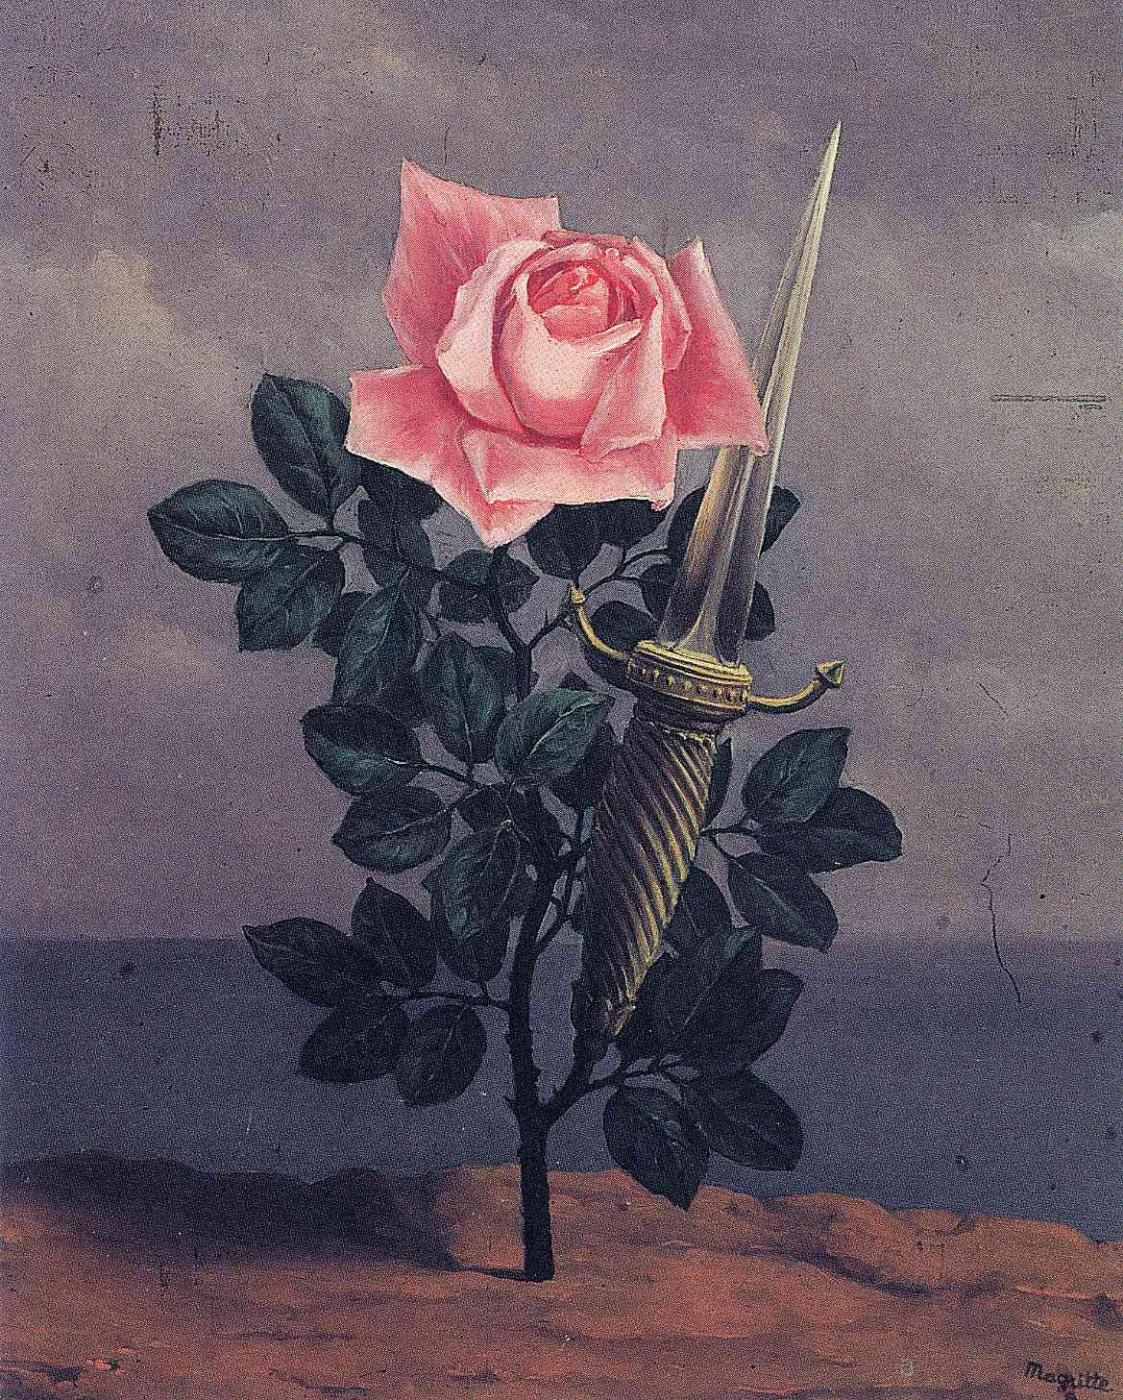 René Magritte. Shot in the heart